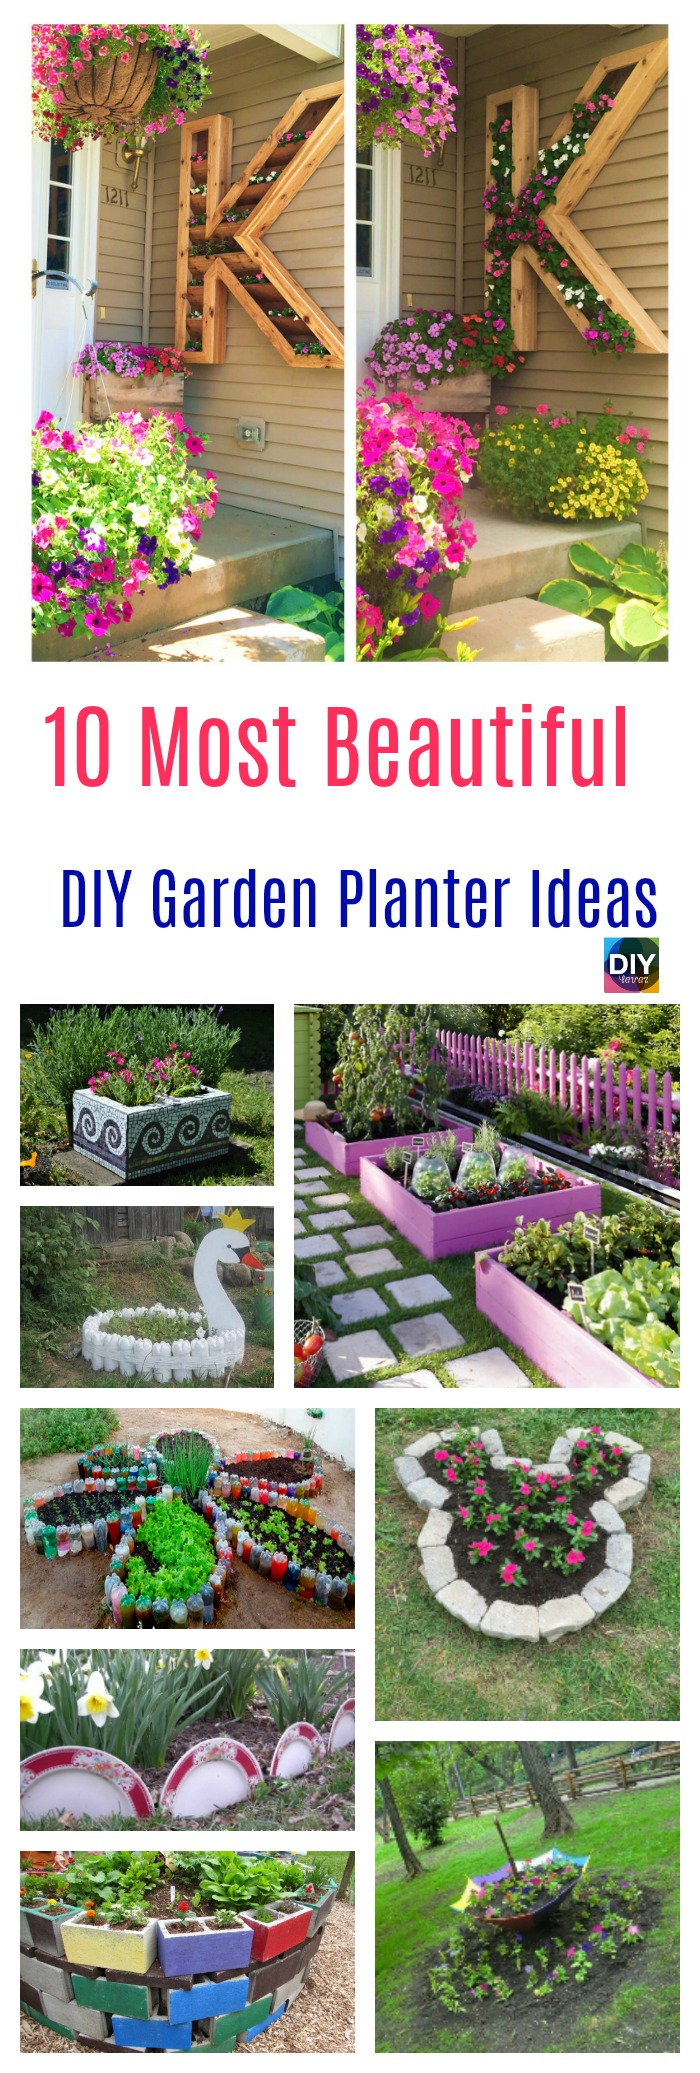 diy4ever- 10 Most Beautiful DIY Garden Planter Ideas